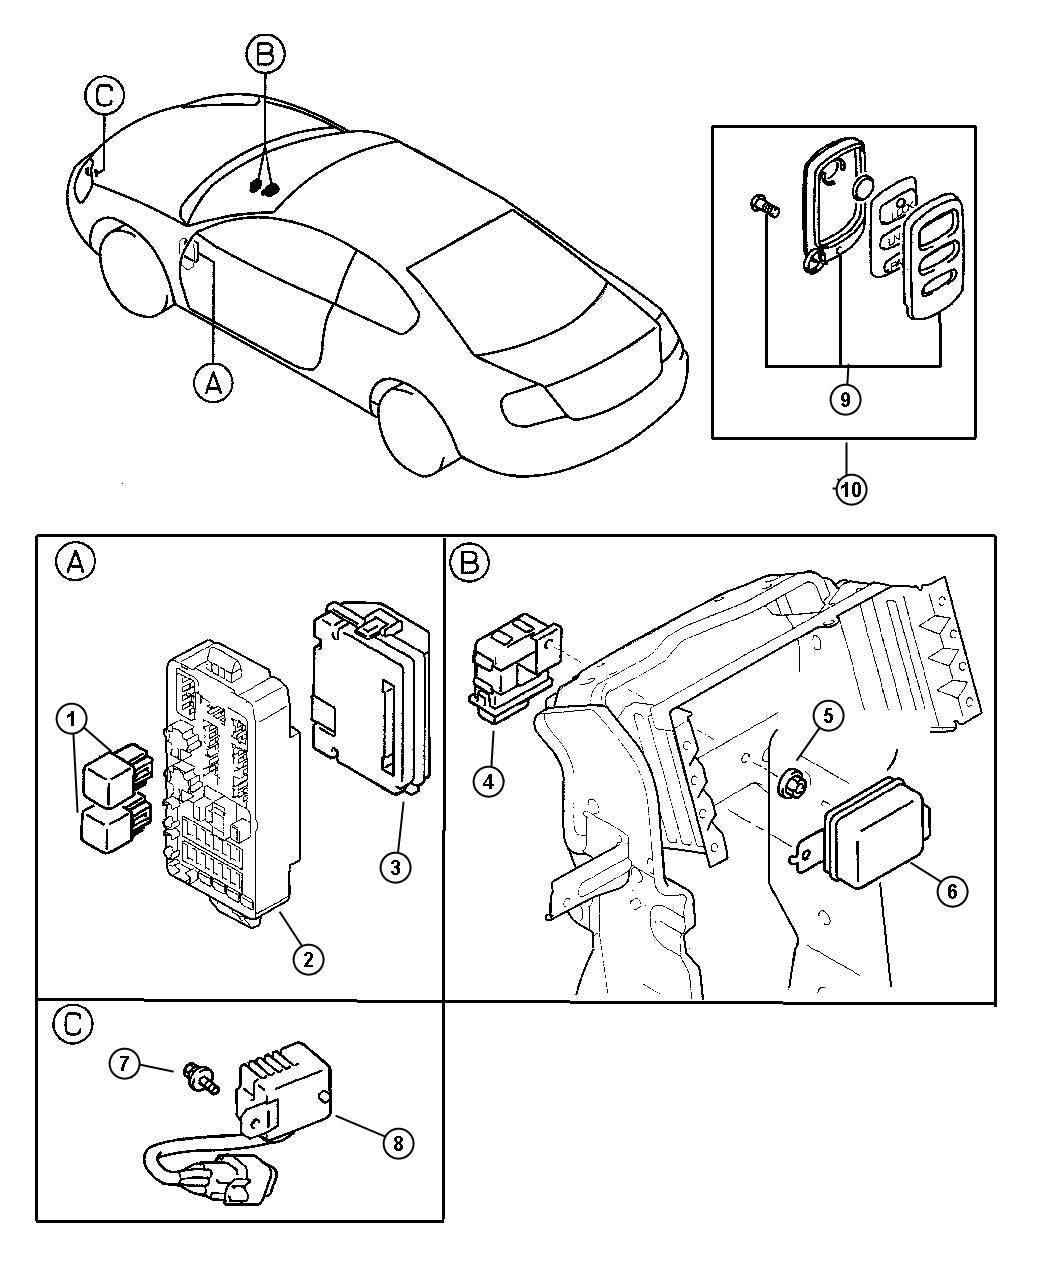 Chrysler Sebring Module Used For Time And Alarm With